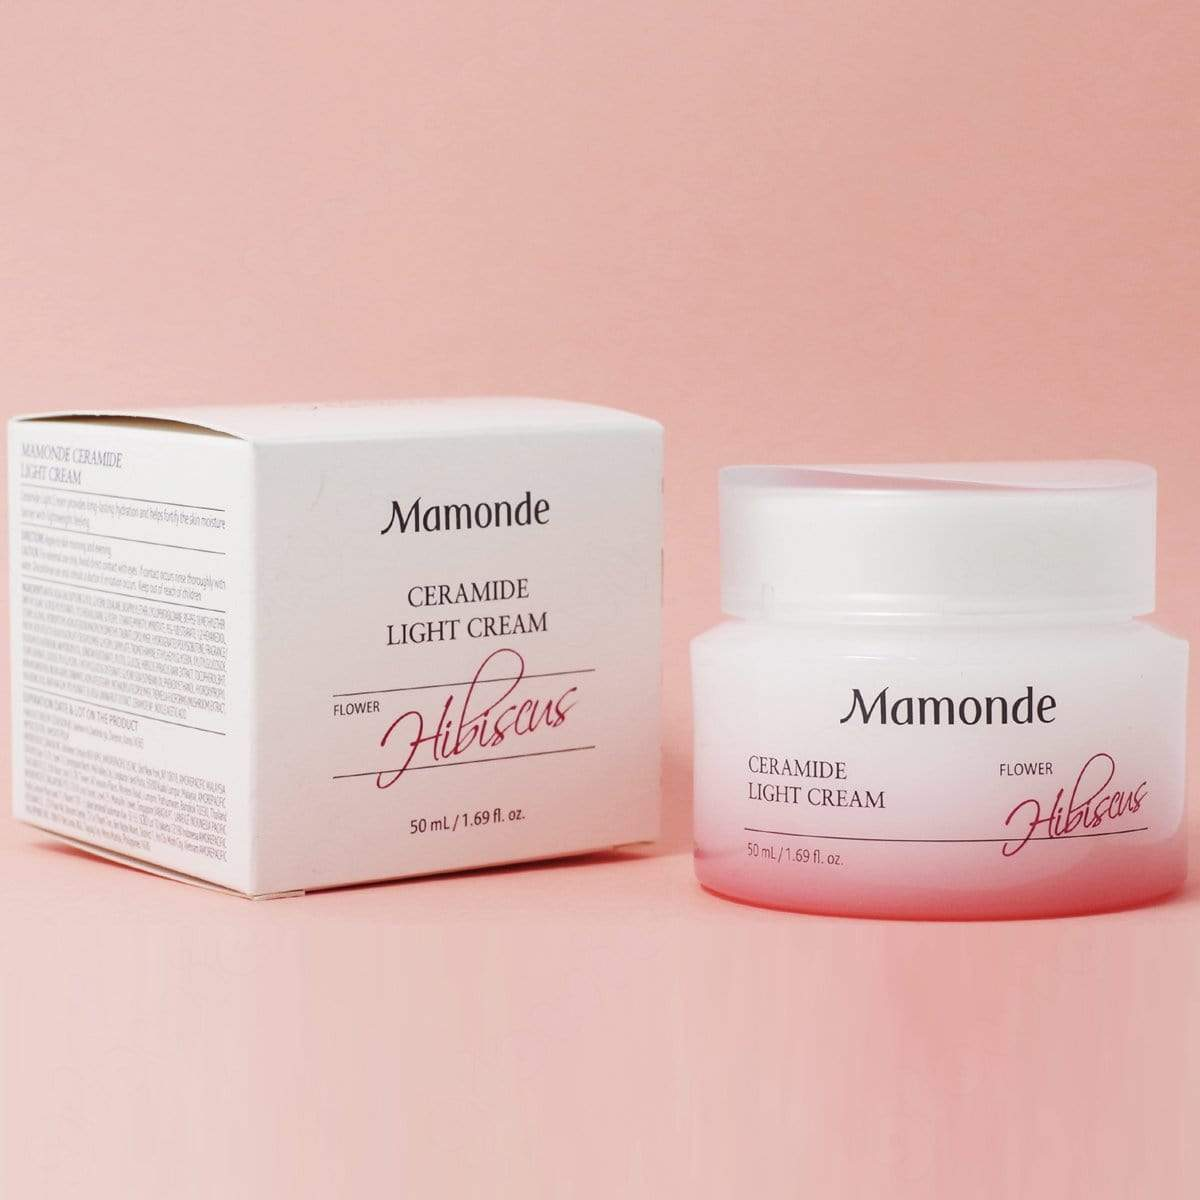 Mamonde Hibiscus Ceramide Light Cream